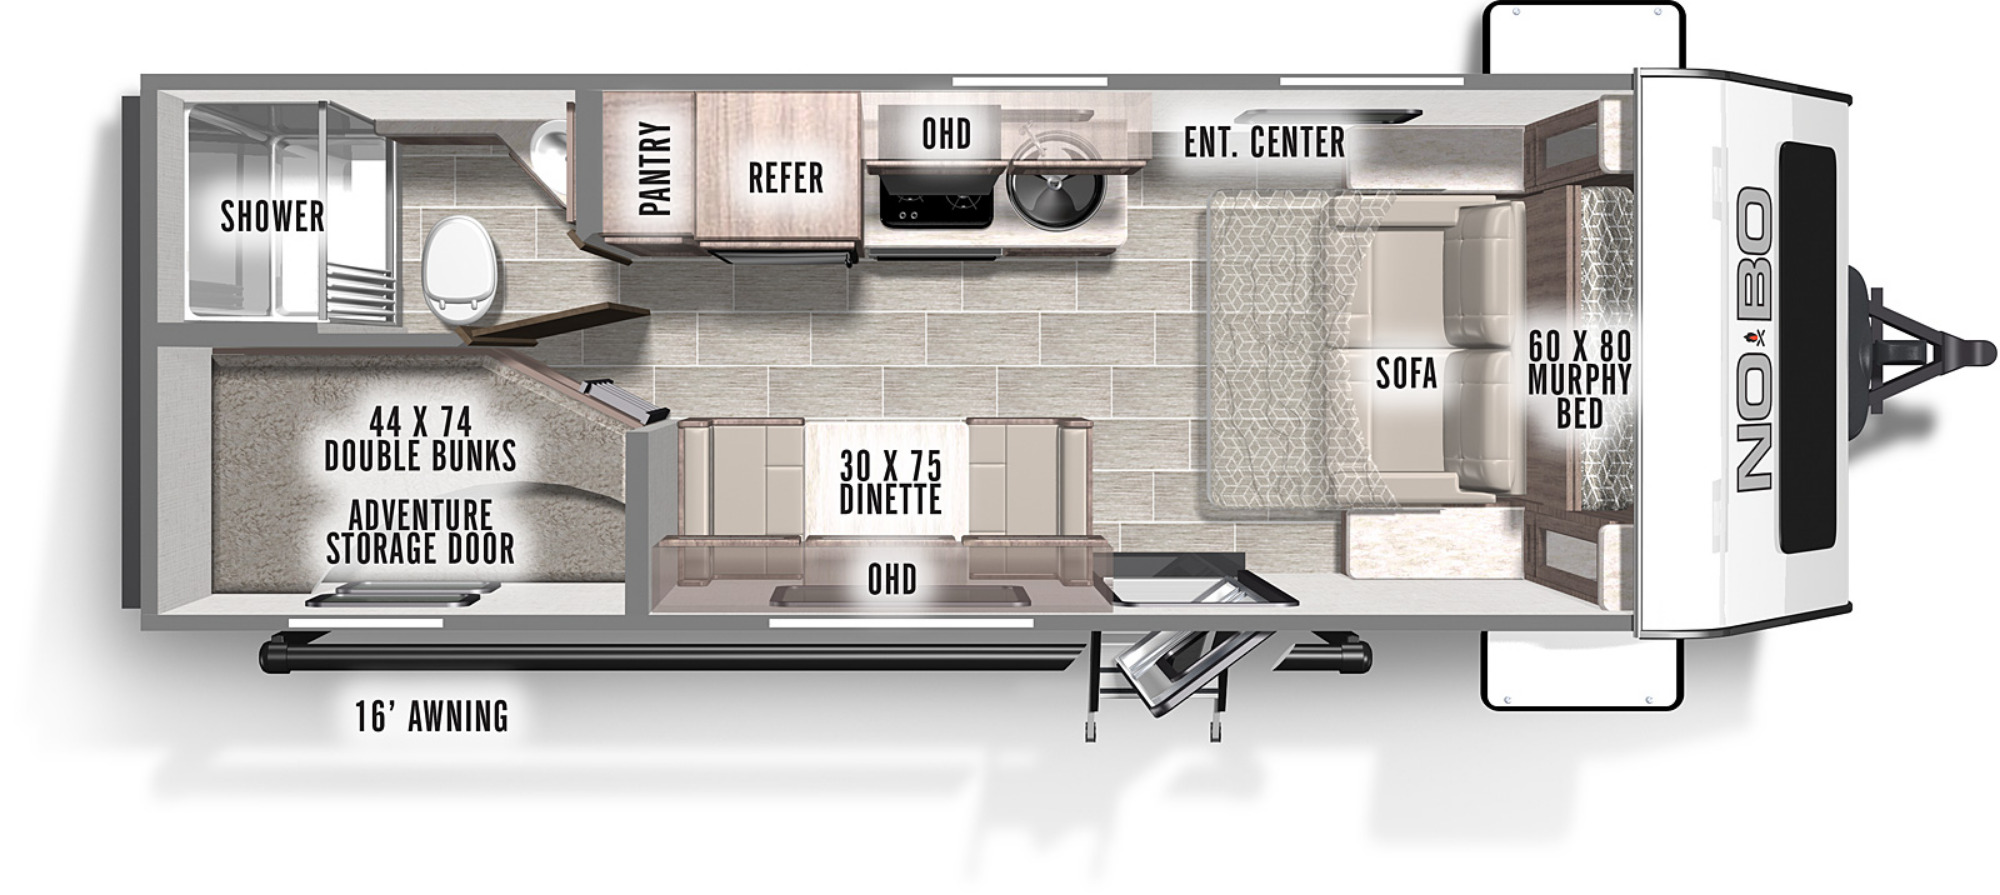 View Floor Plan for 2021 FOREST RIVER NO BOUNDARIES ROGUE RIVER 19.3